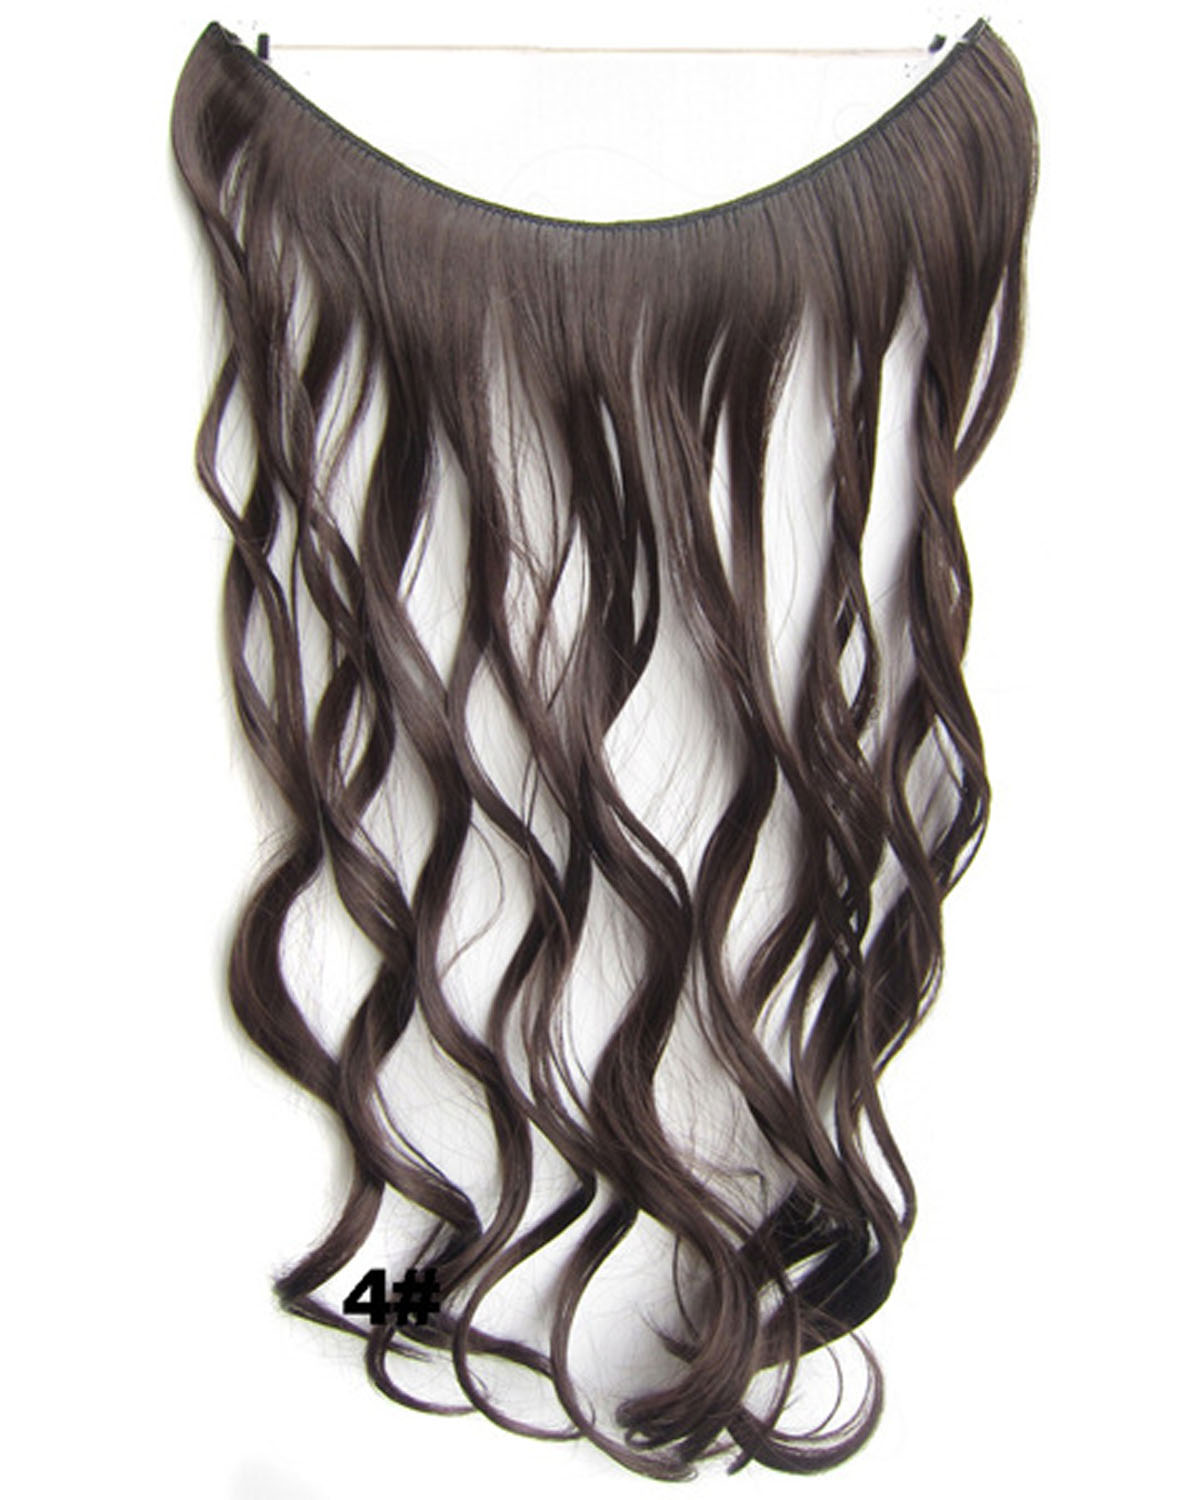 22 Inch Hot-sale Curly and Long One Piece Miracle Wire Flip in Synthetic Hair Extension 4#